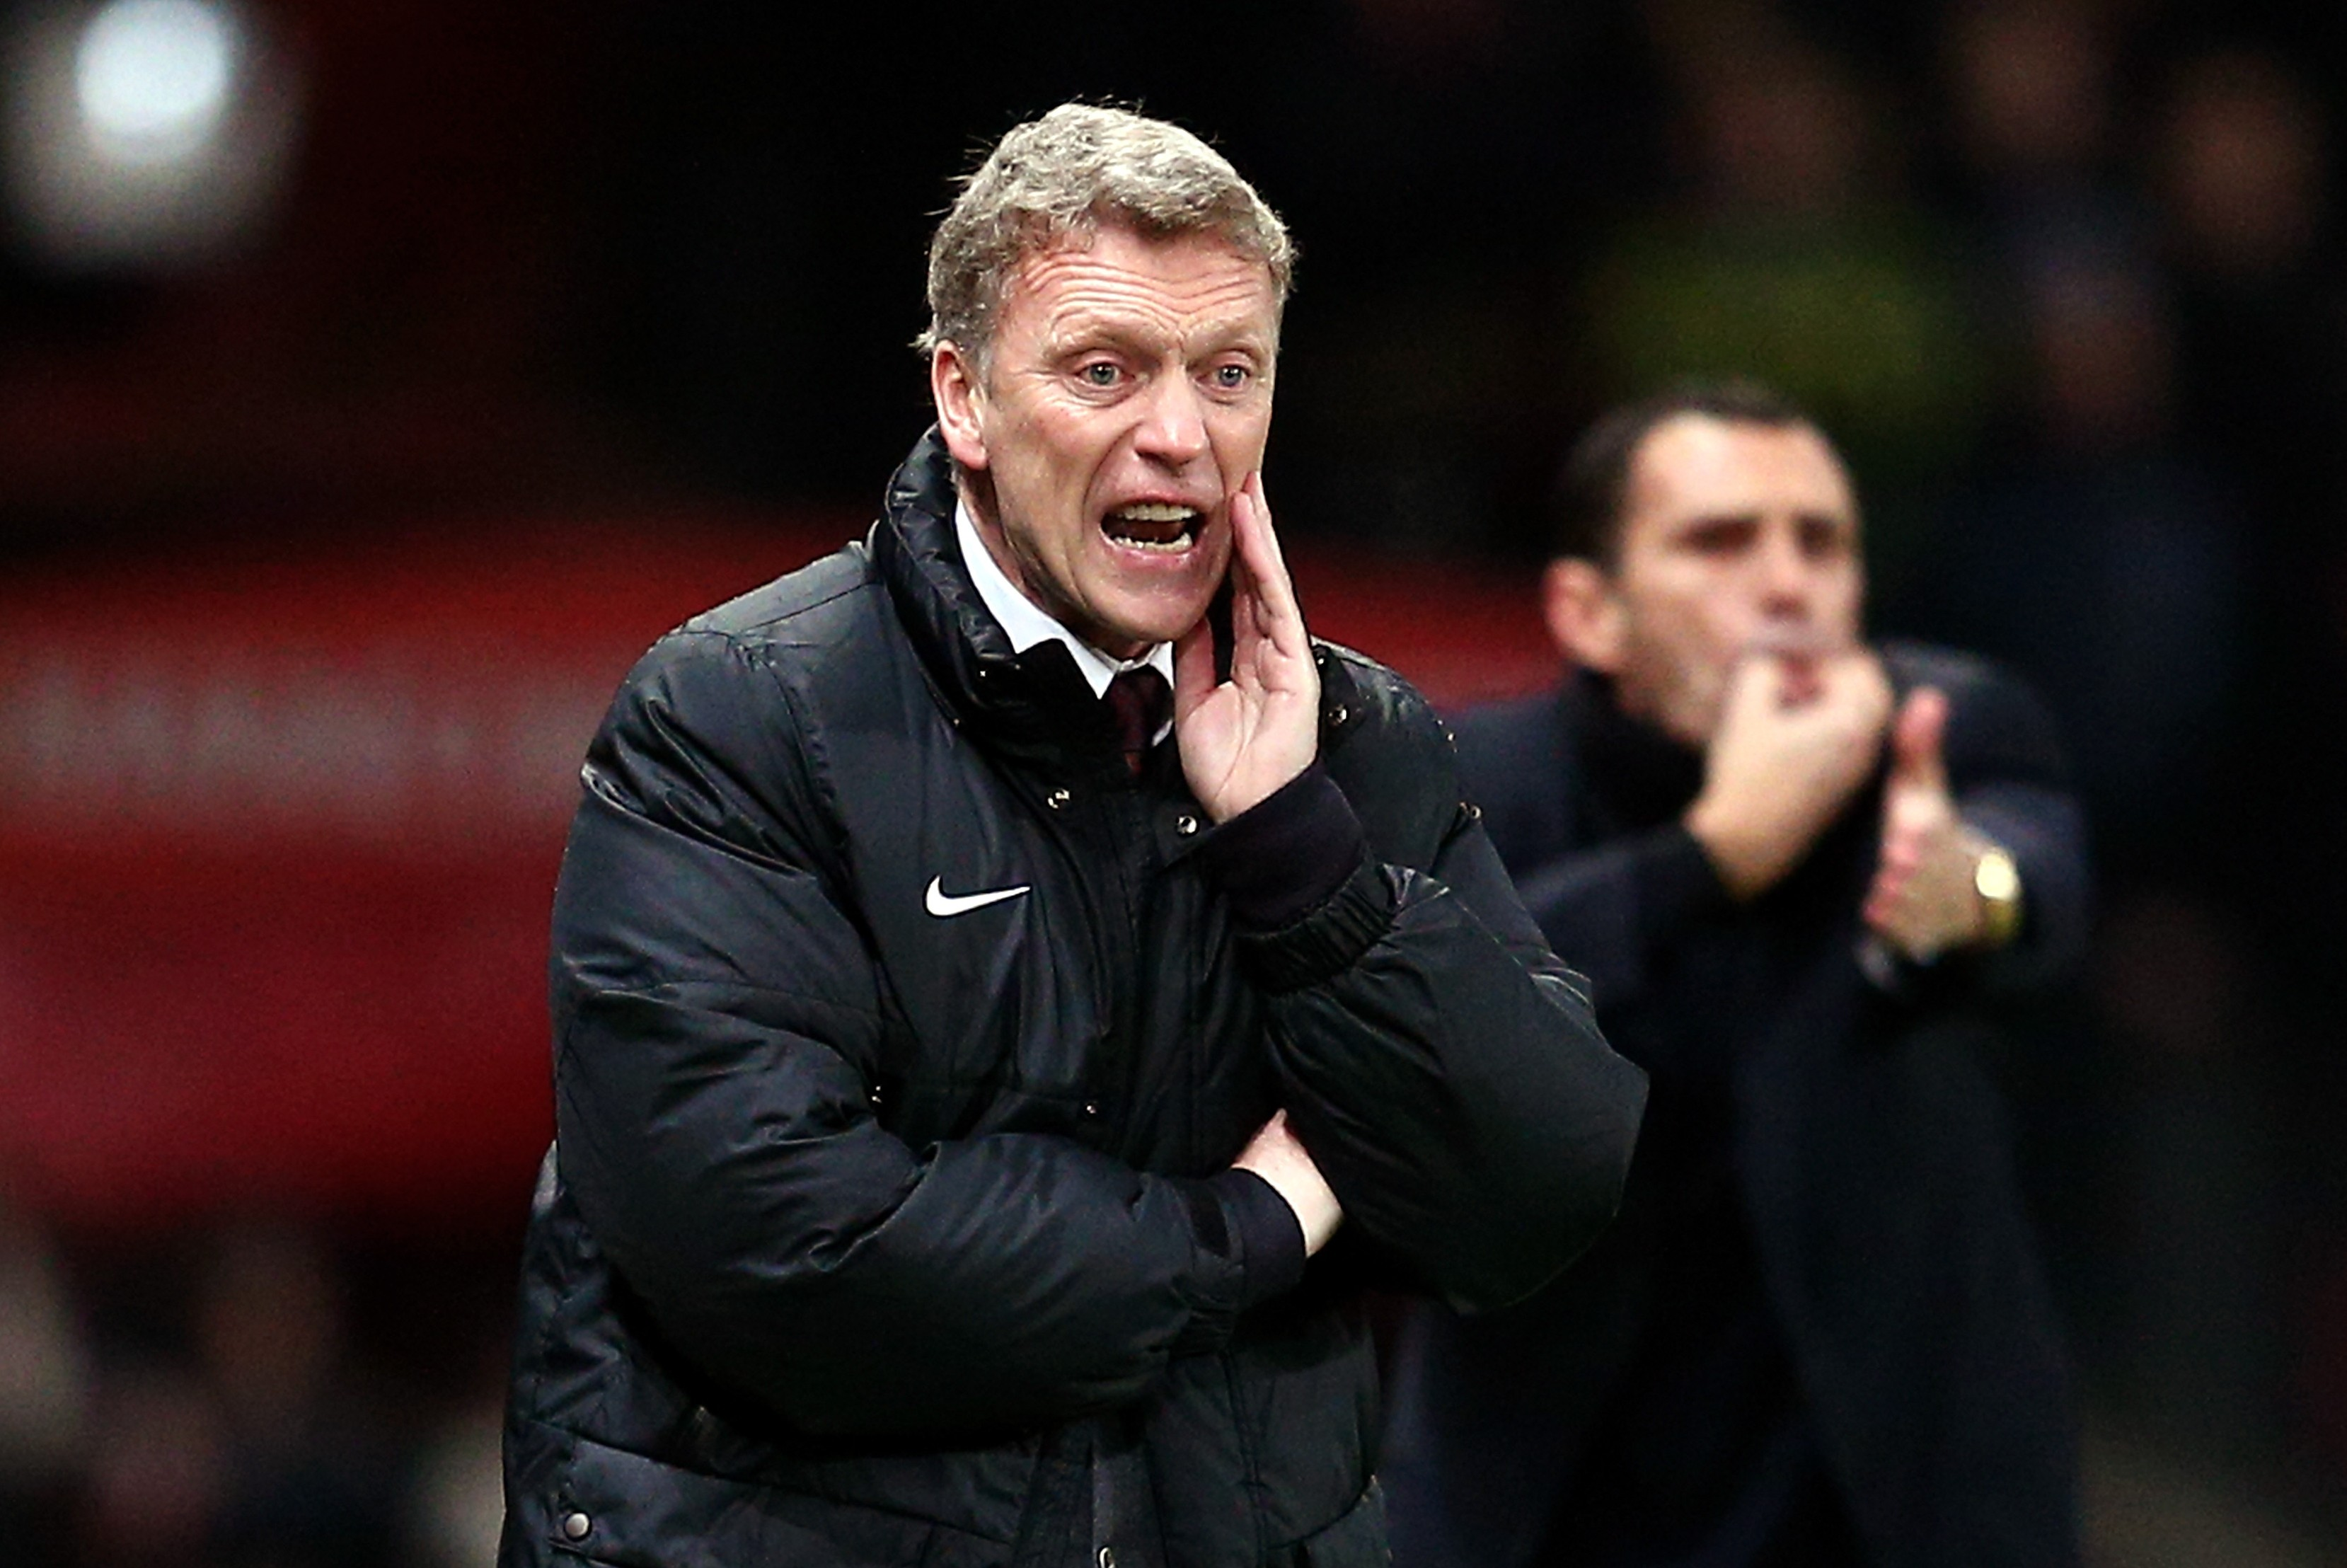 Manchester United v Sunderland - Capital One Cup Semi-Final: Second Leg